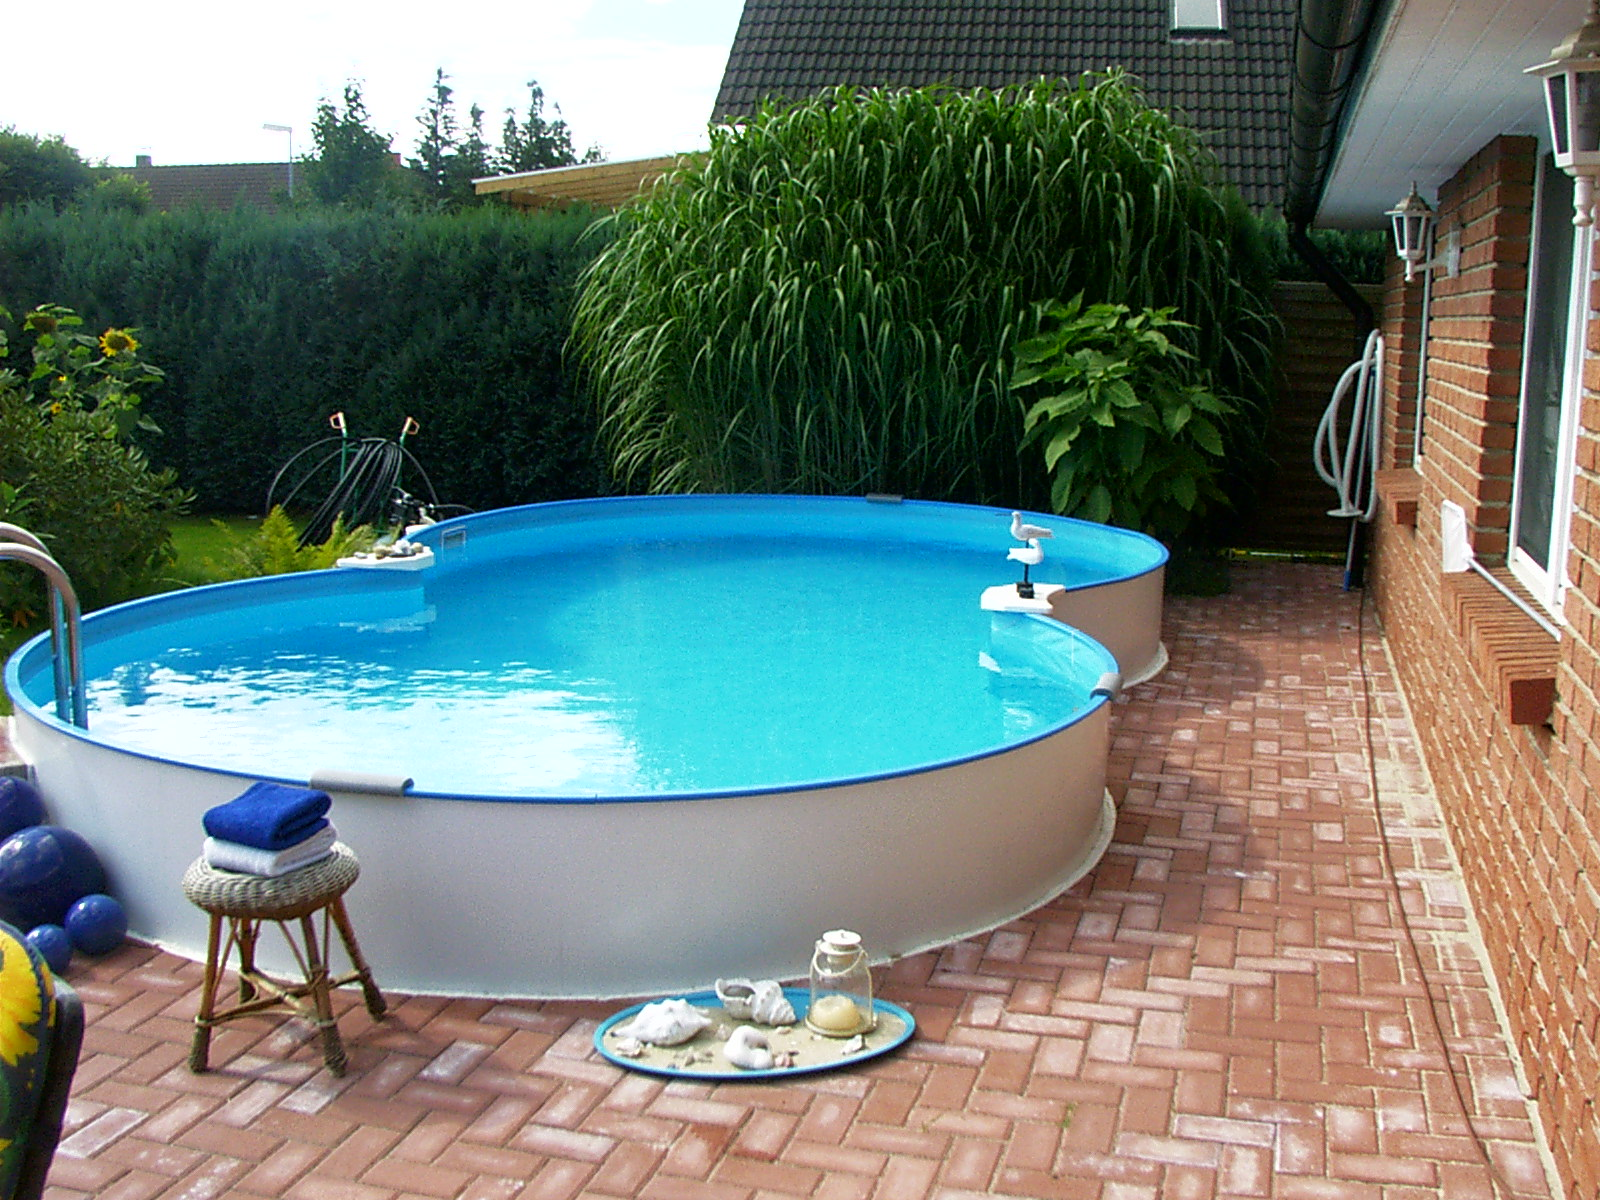 Pool Garten Aufblasbar Garten Pool Contemporary Garten Pool Pools For Home